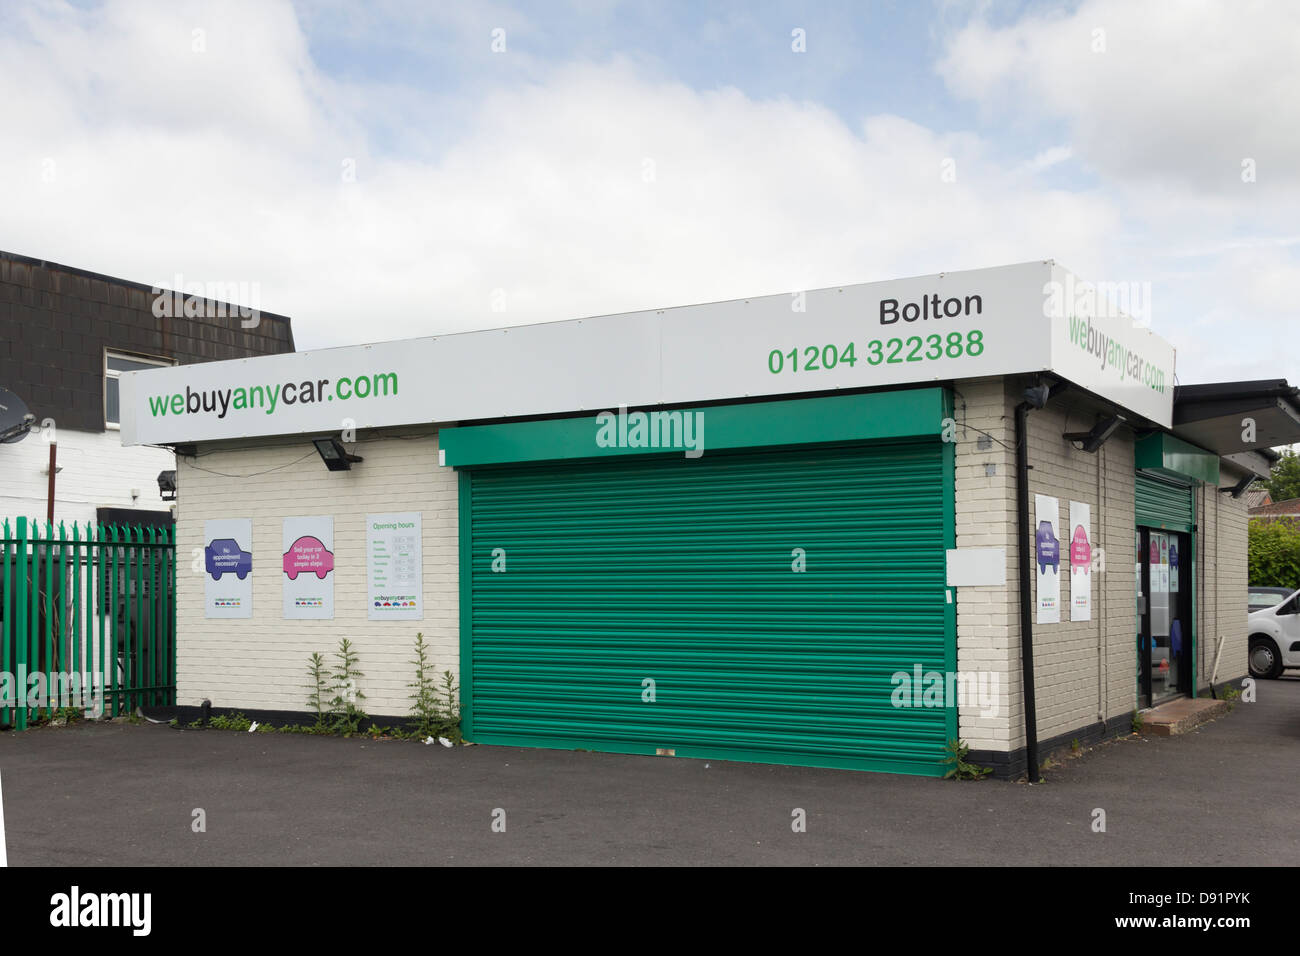 The Webuyanycar.com office on Manchester Road Bolton, specialists in buying secondhand cars for cash through their - Stock Image